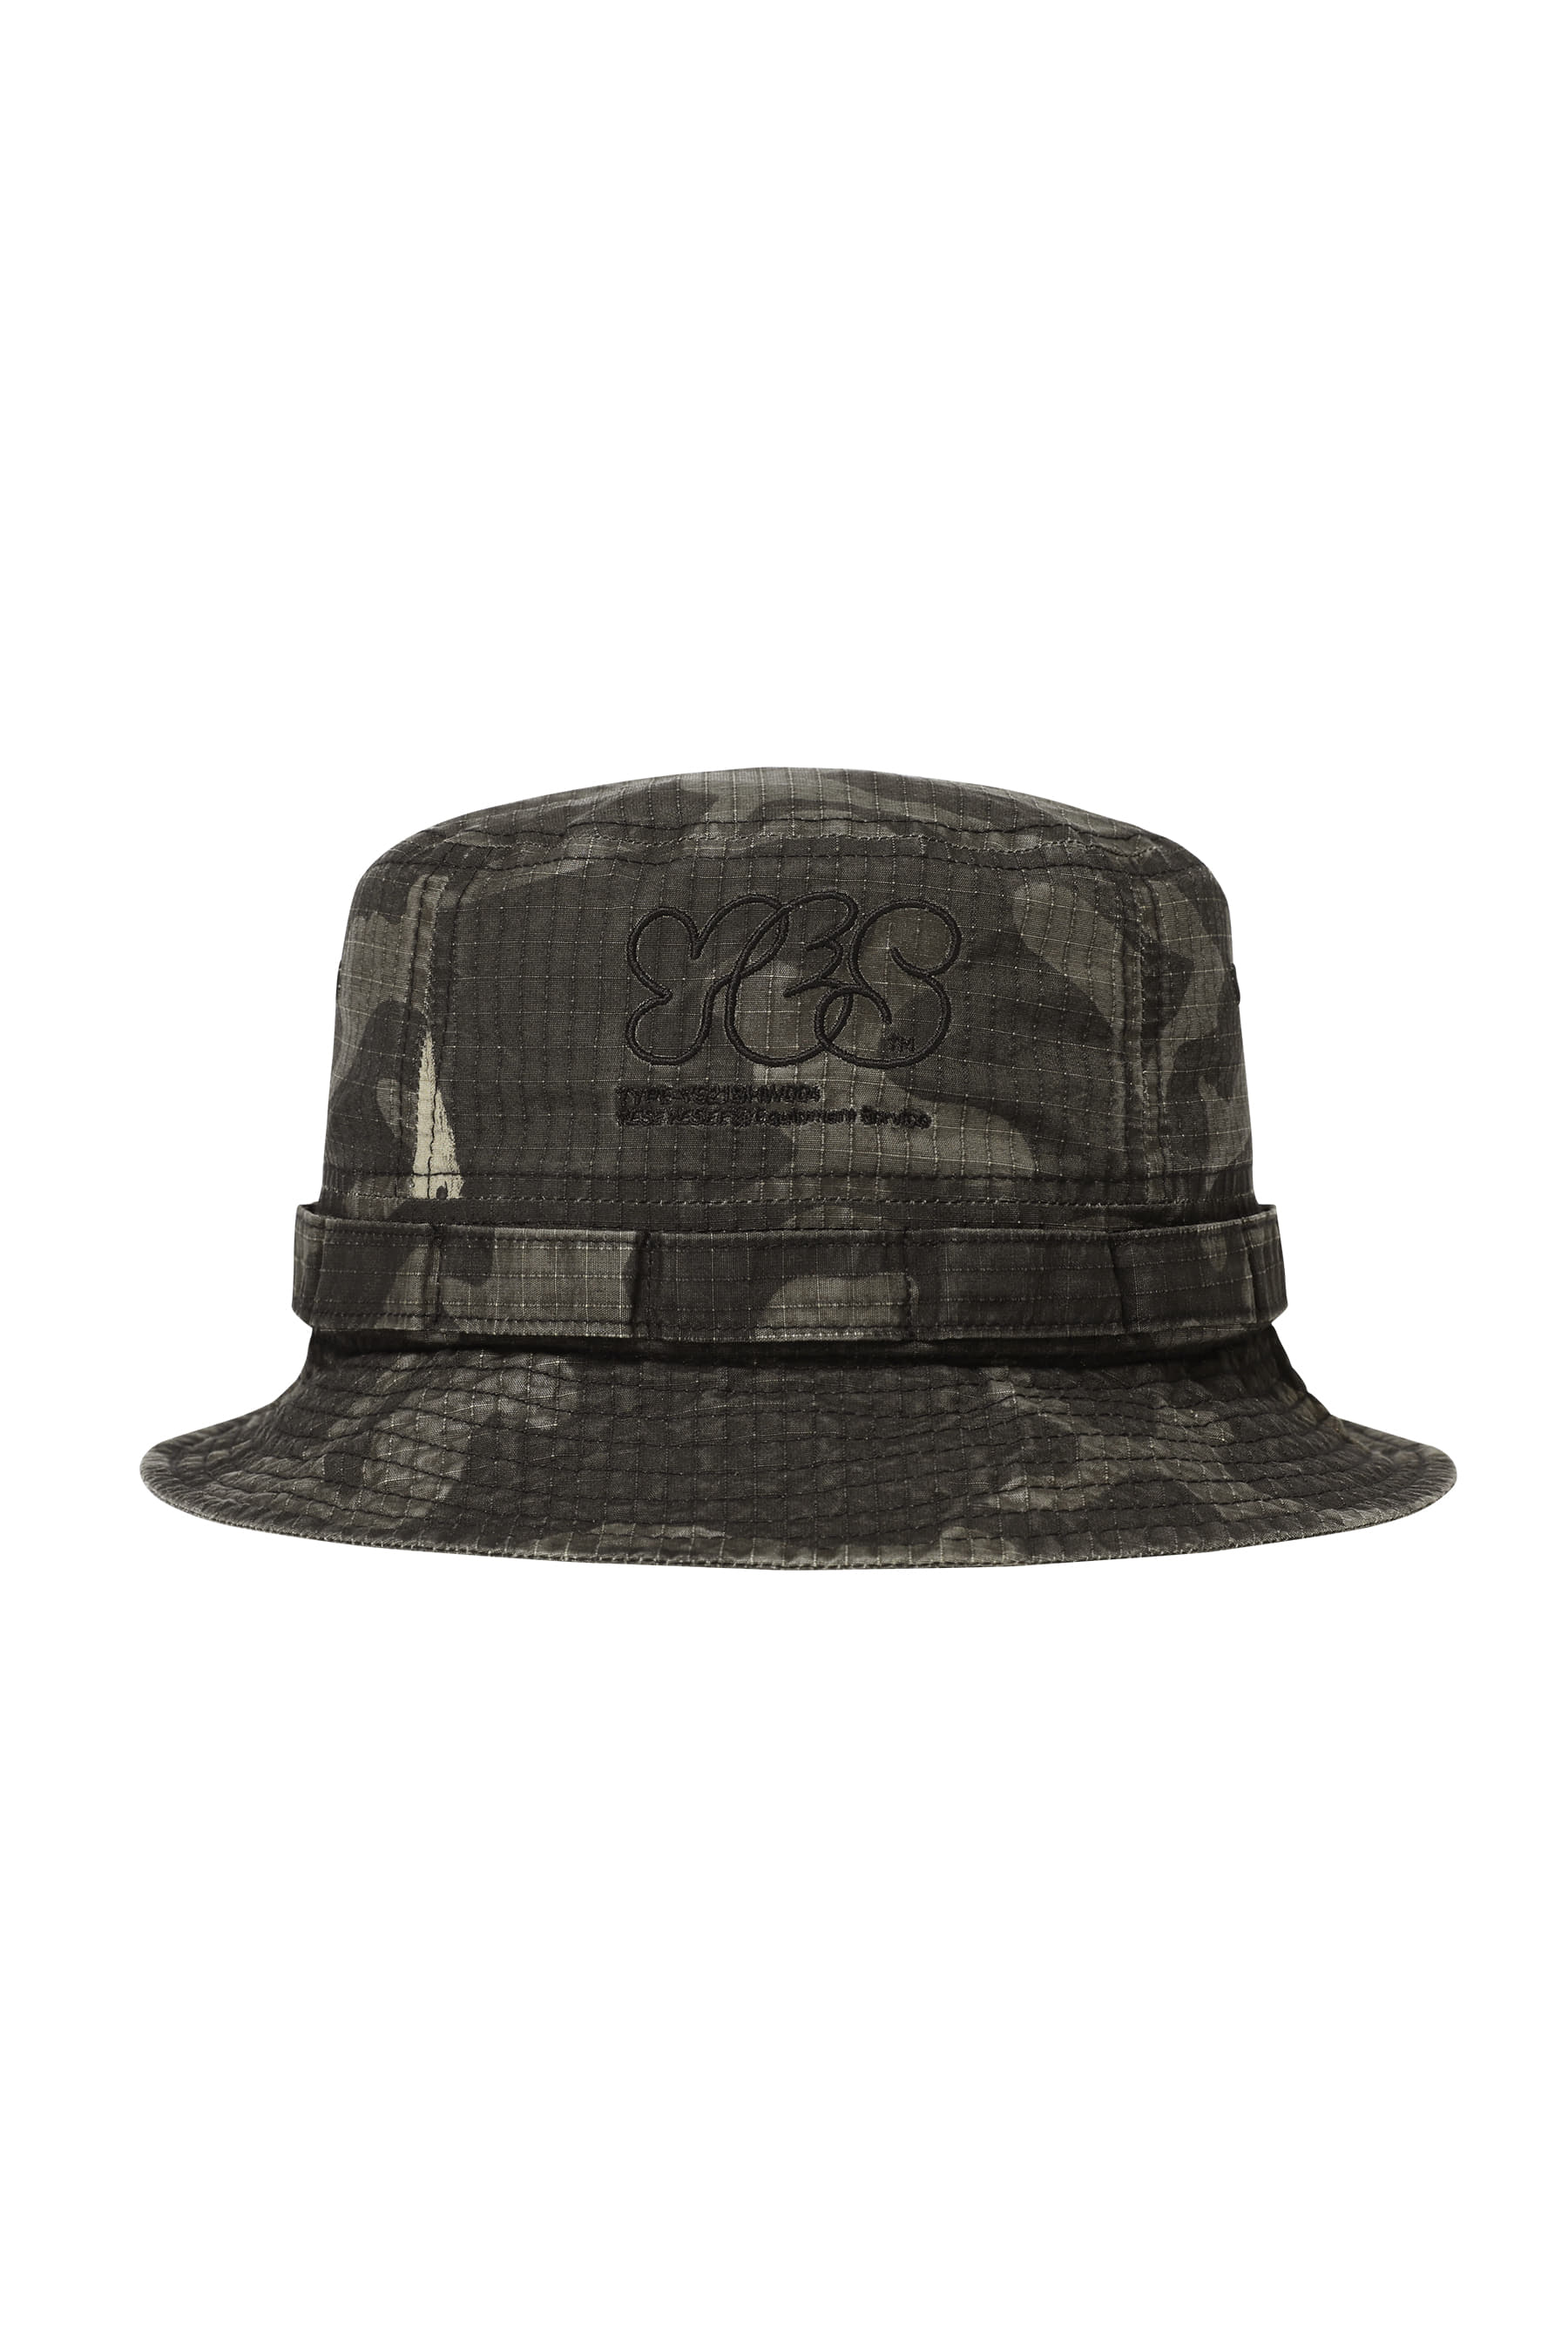 Y.E.S Military Bucket Hat Black Camo